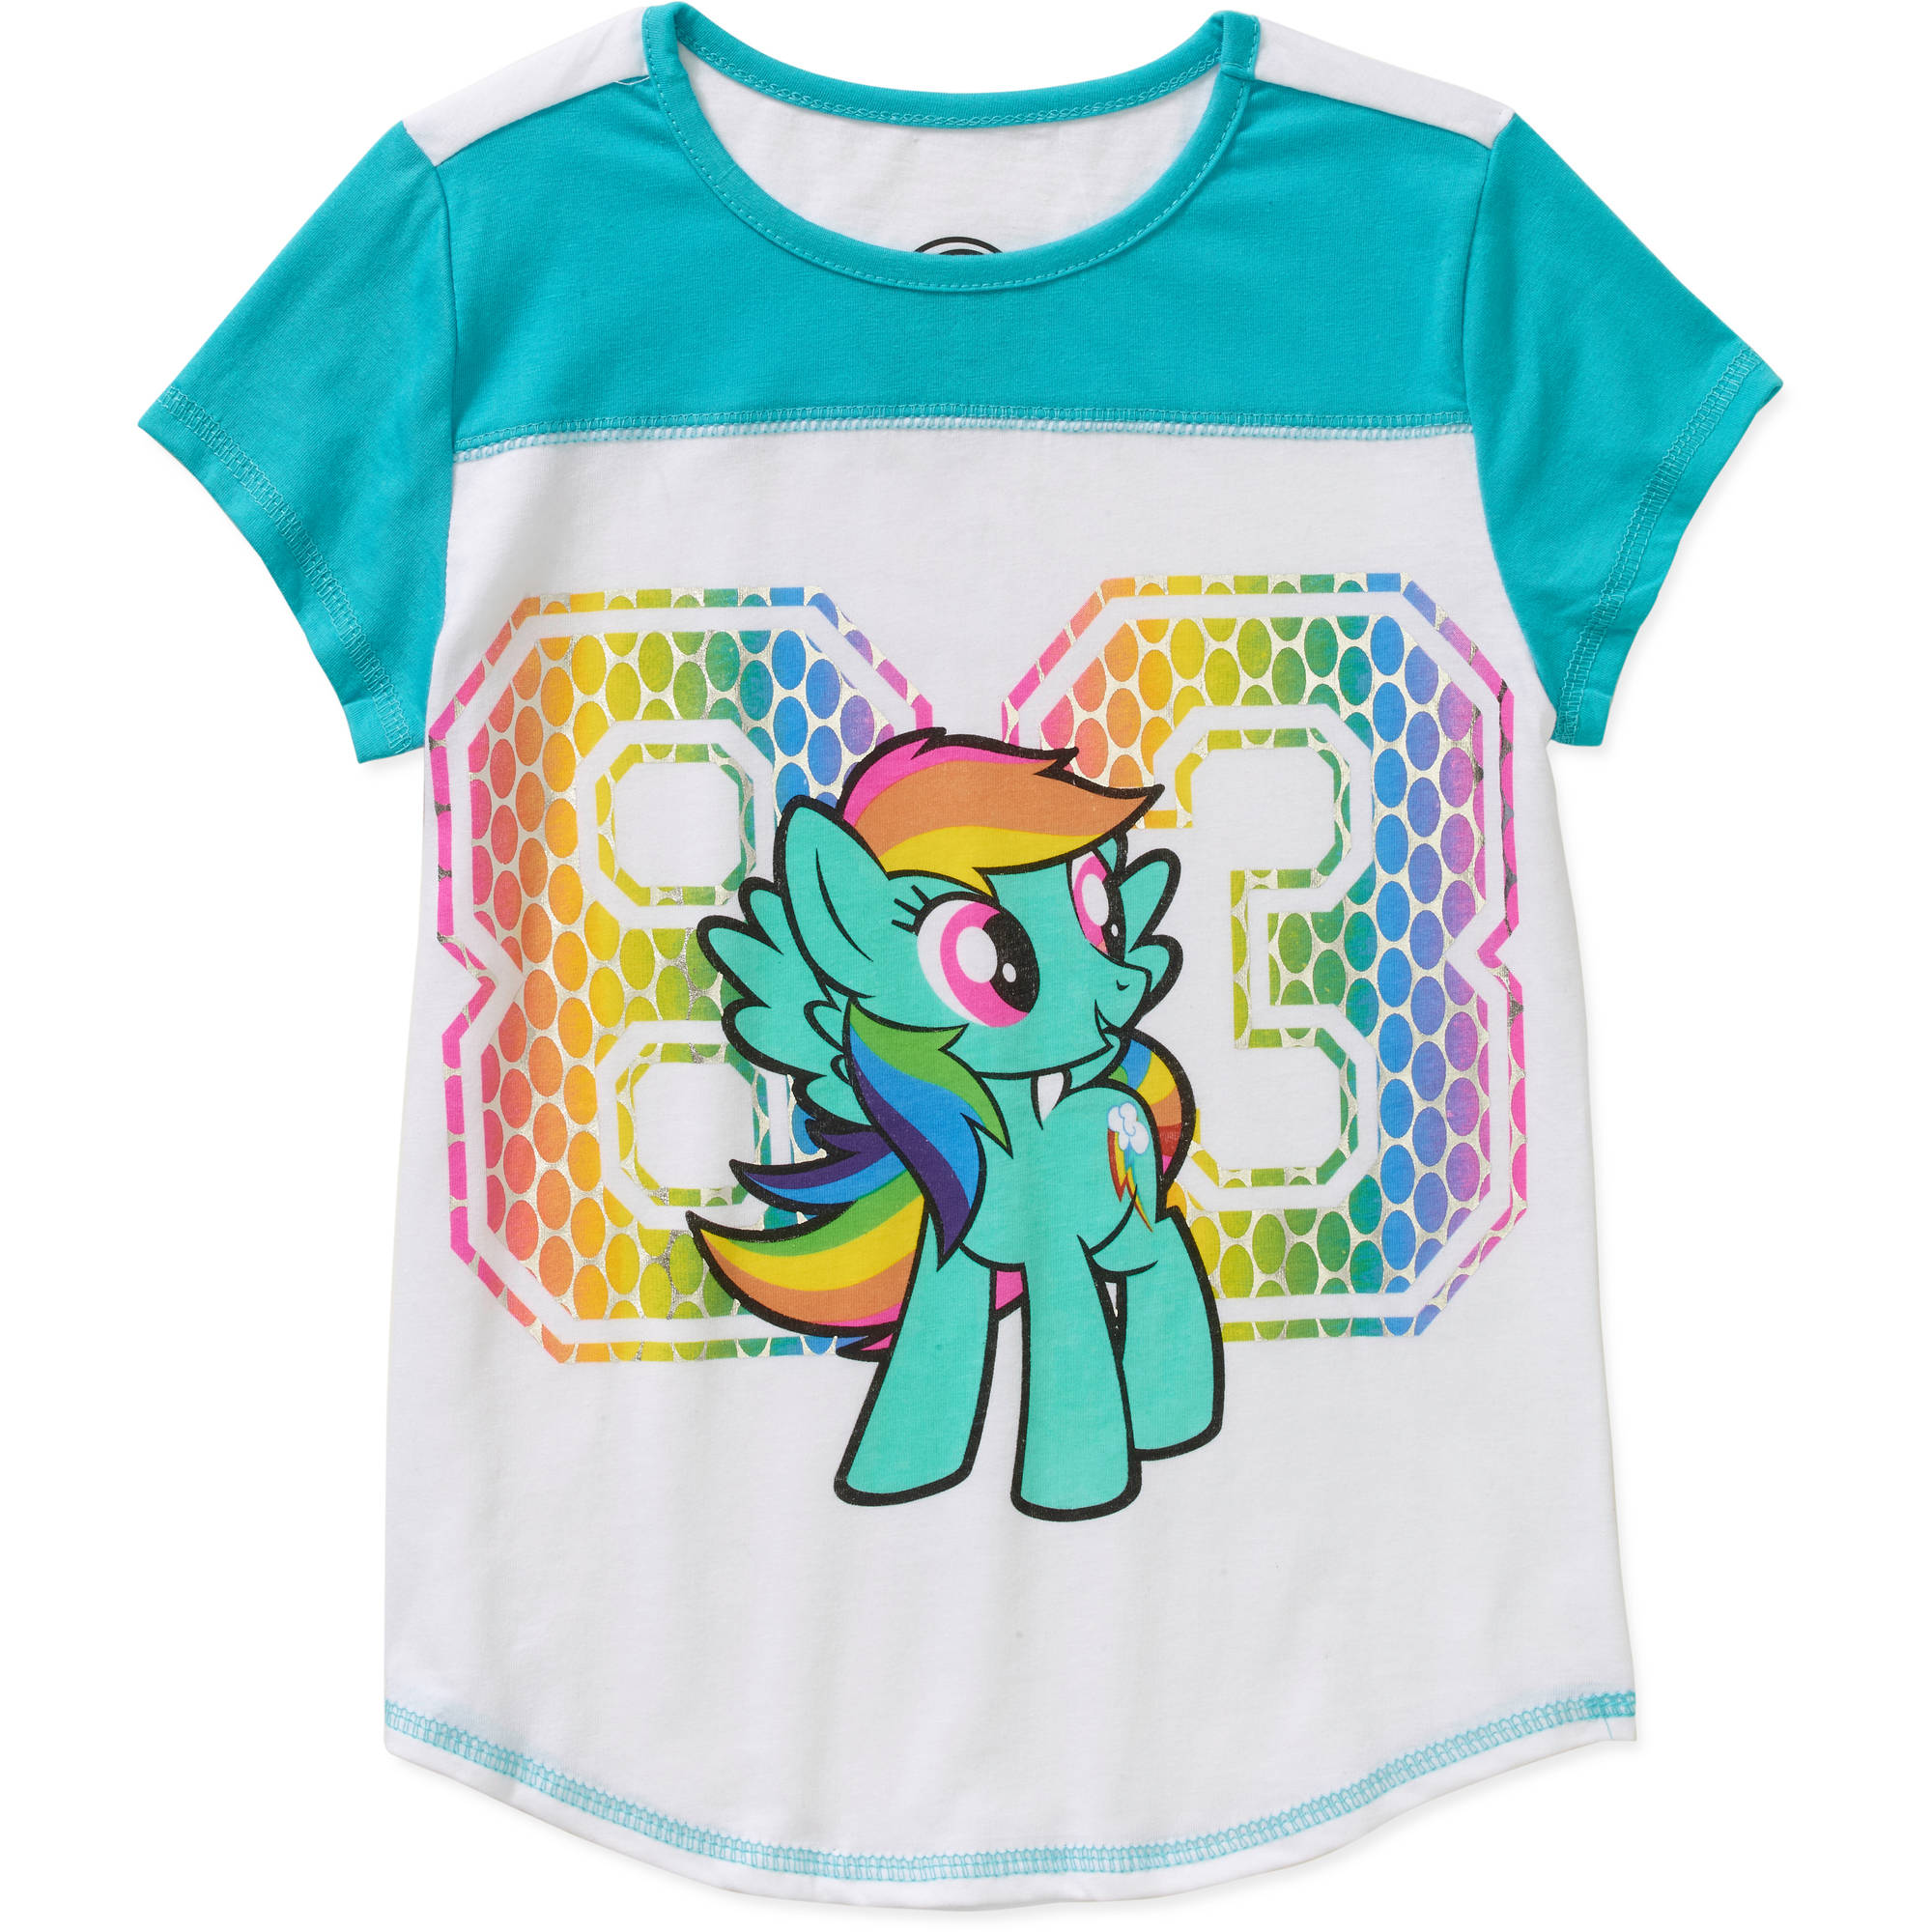 My Little Pony Rainbow Dash 83 Colorblocked Graphic Tee with Front Yoke